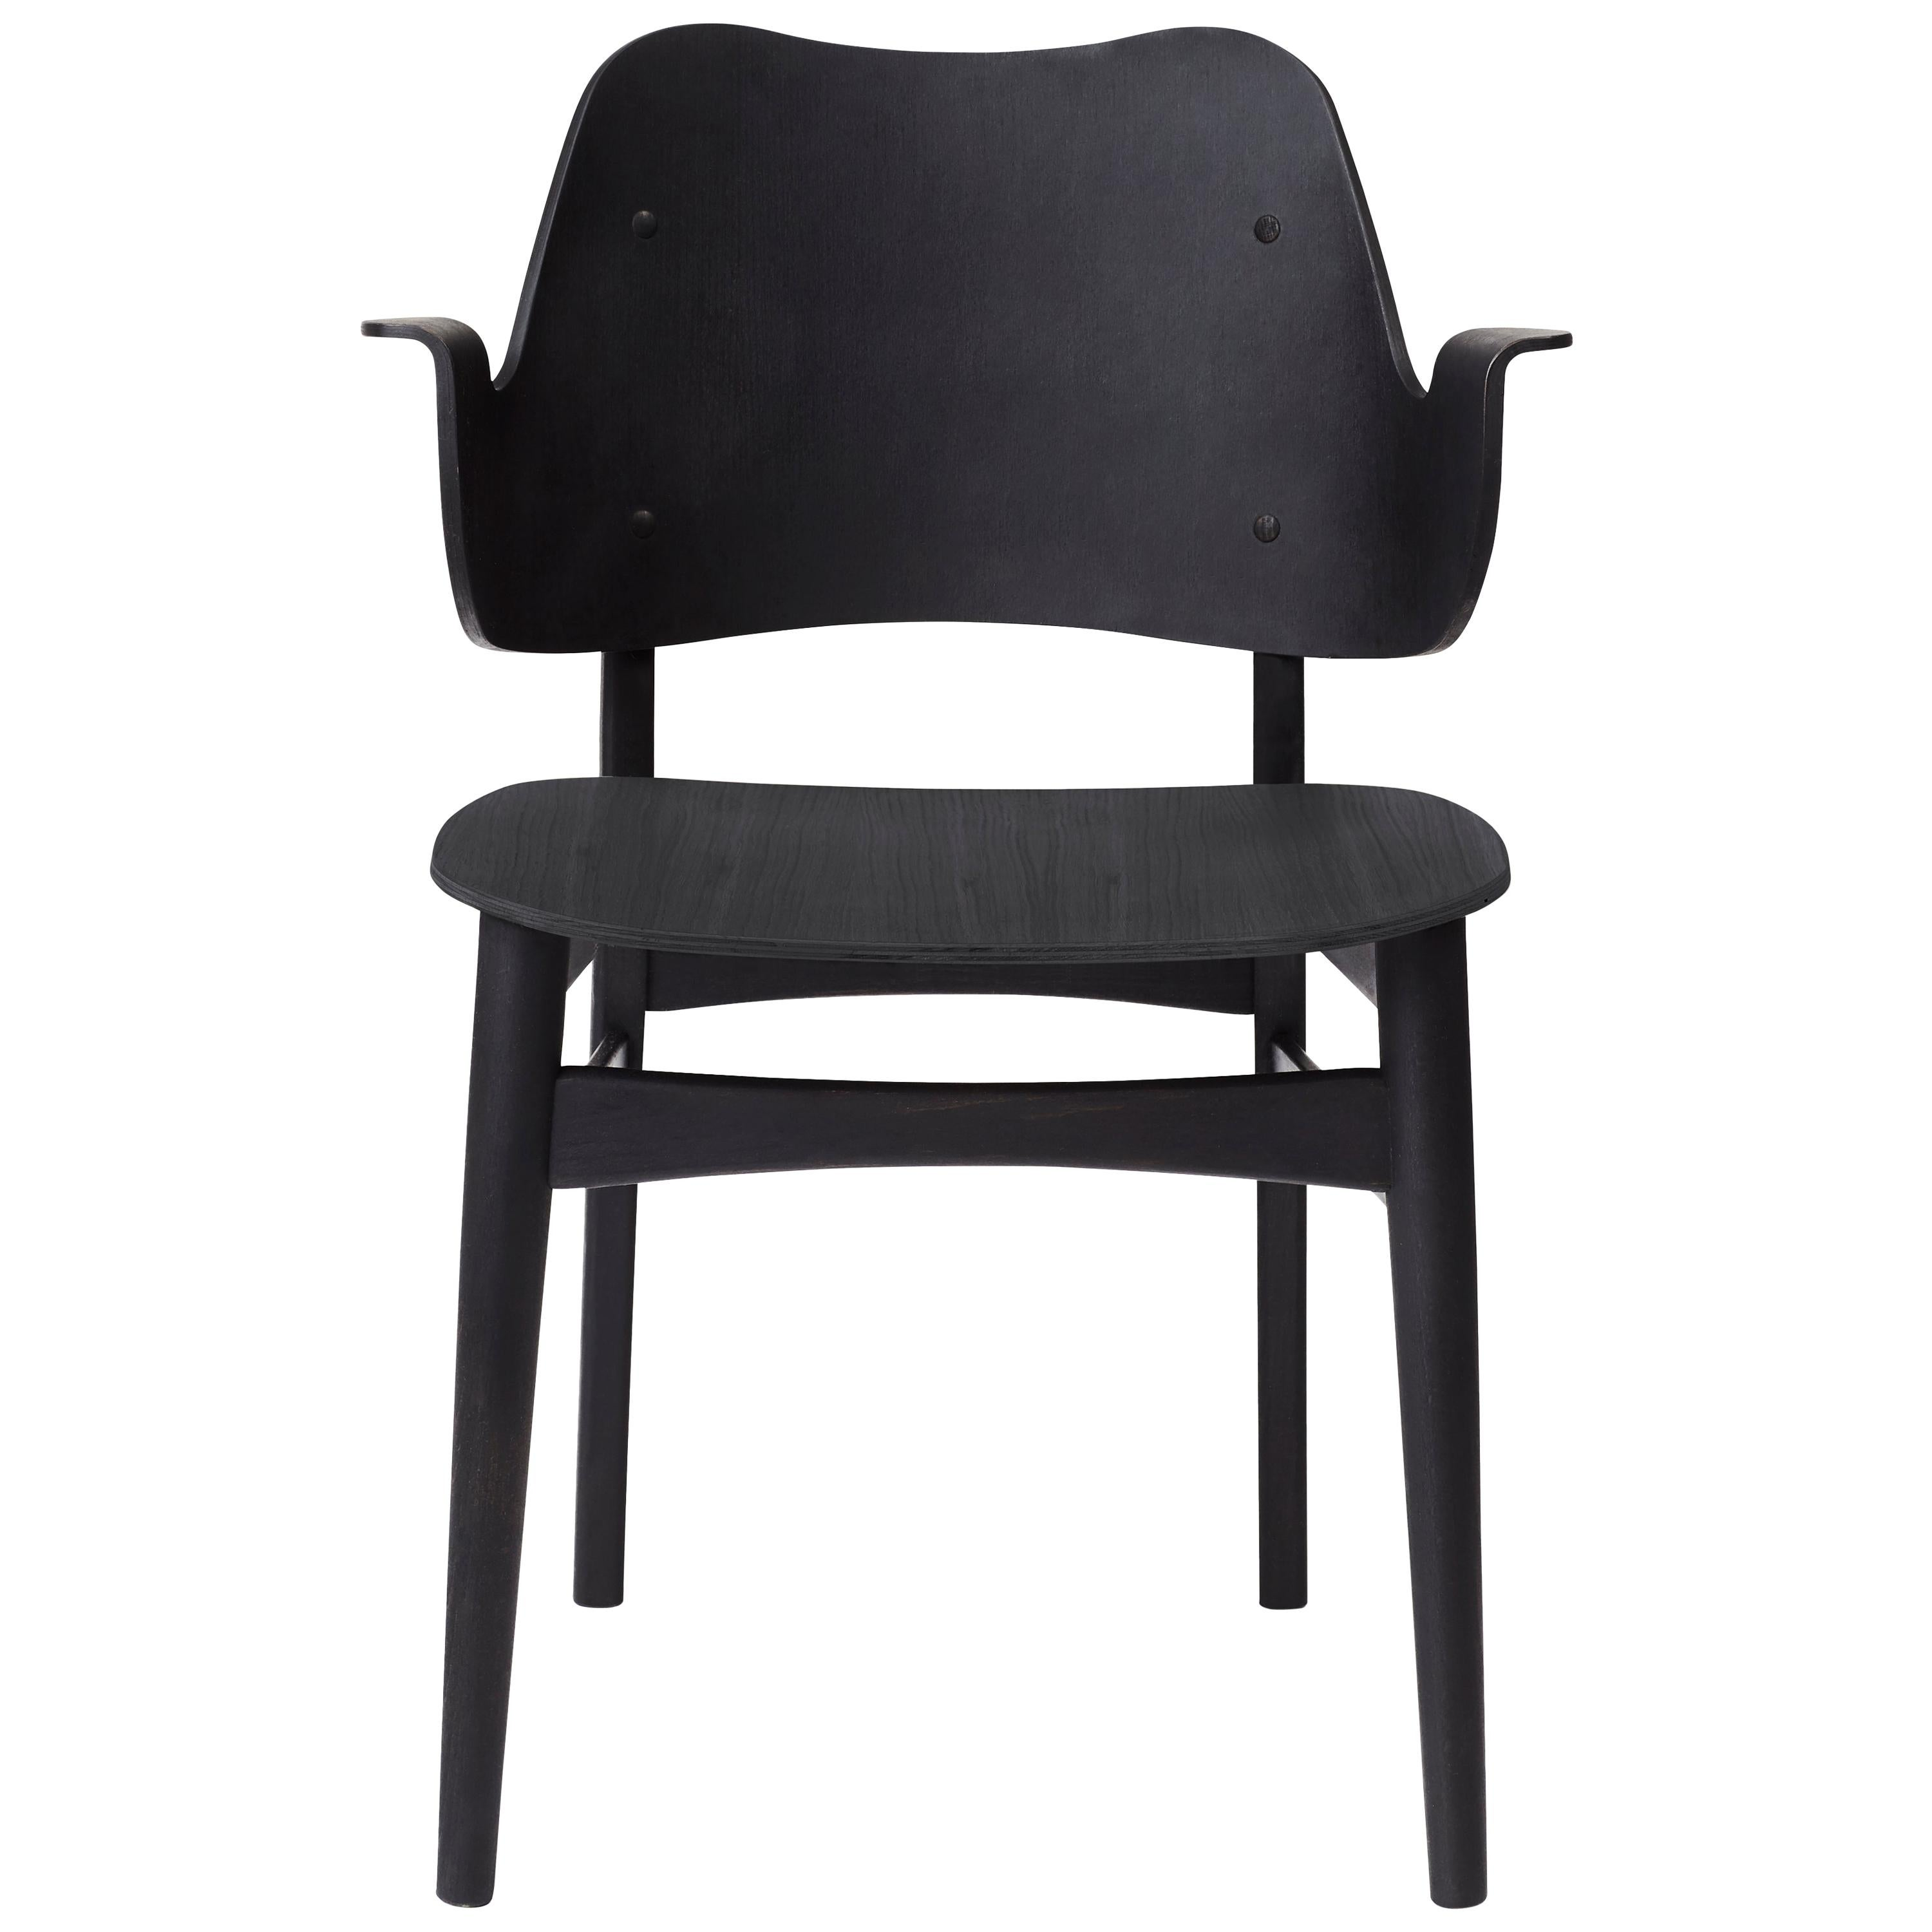 Gesture Chair in Pure Wood, by Hans Olsen from Warm Nordic